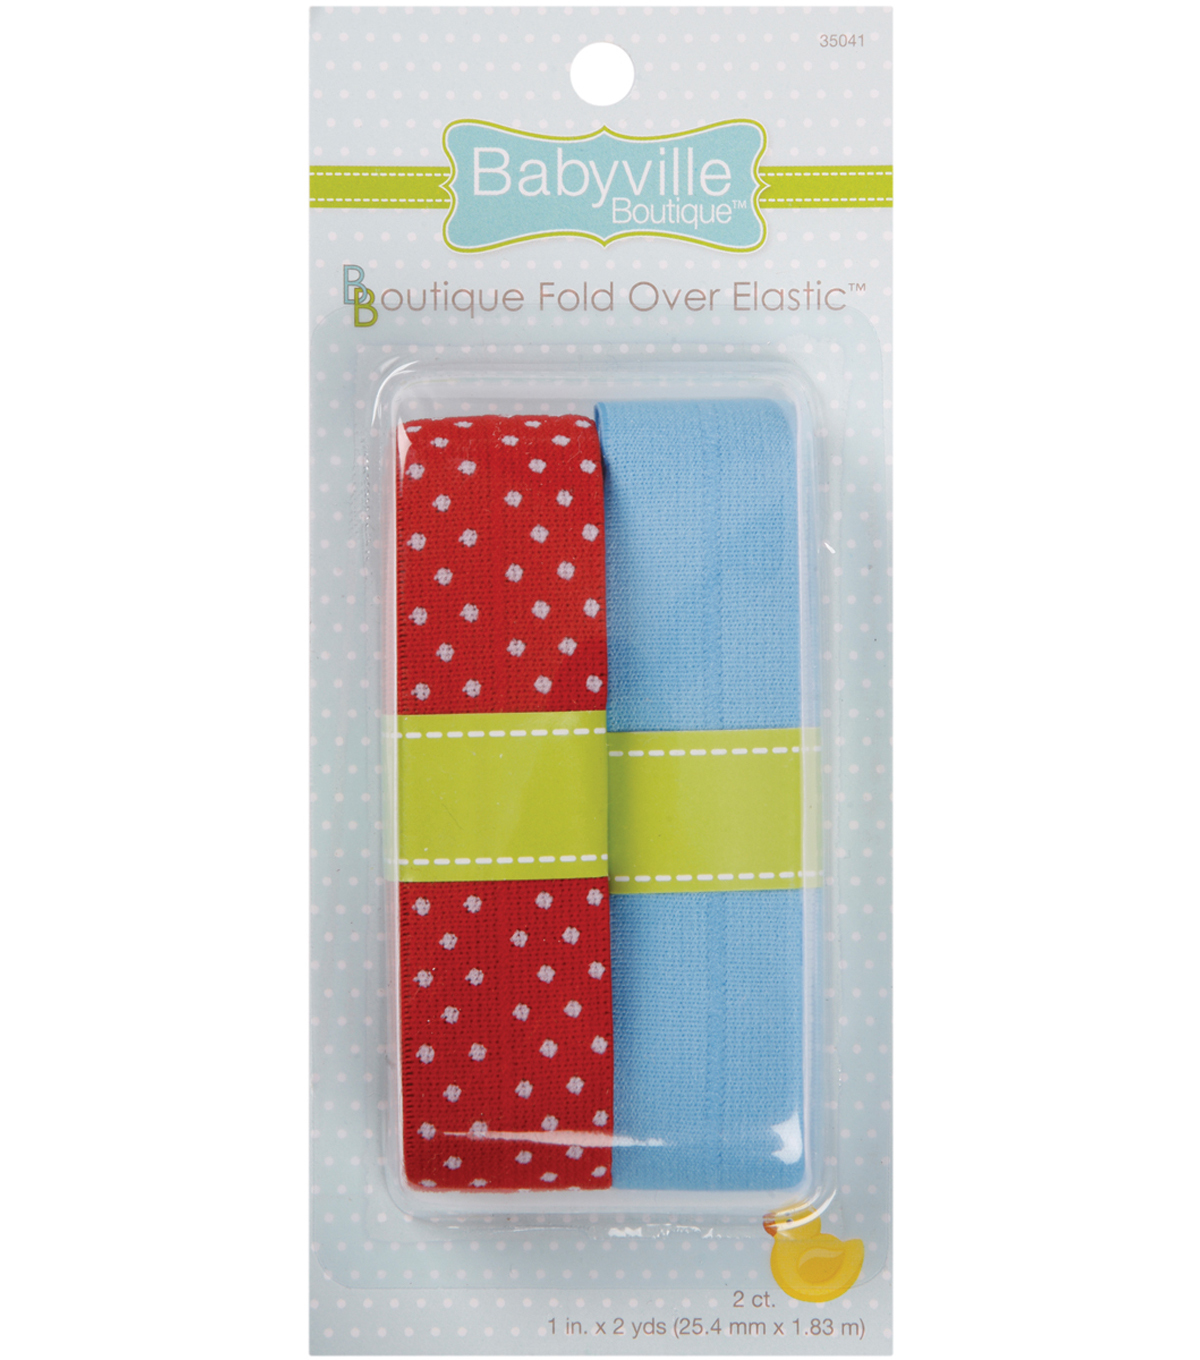 Babyville Boutique 4 Yds Fold Over Elastic Red Blue